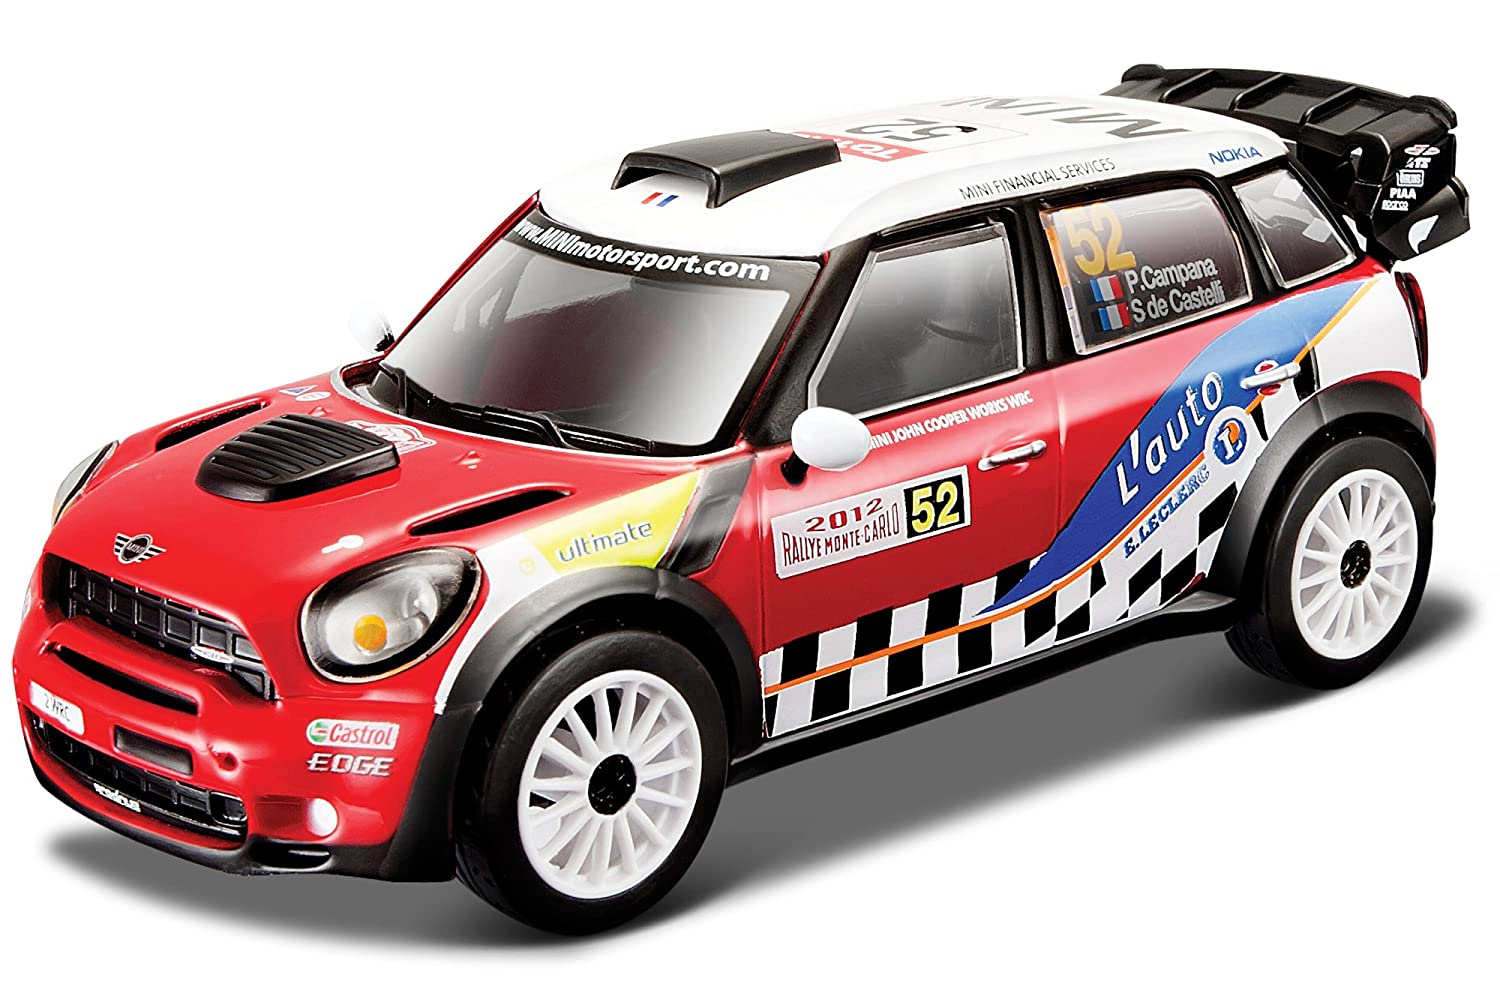 Amazon.com: Burago Burago 1: 32 Diecast Rally 2012 Mini ...